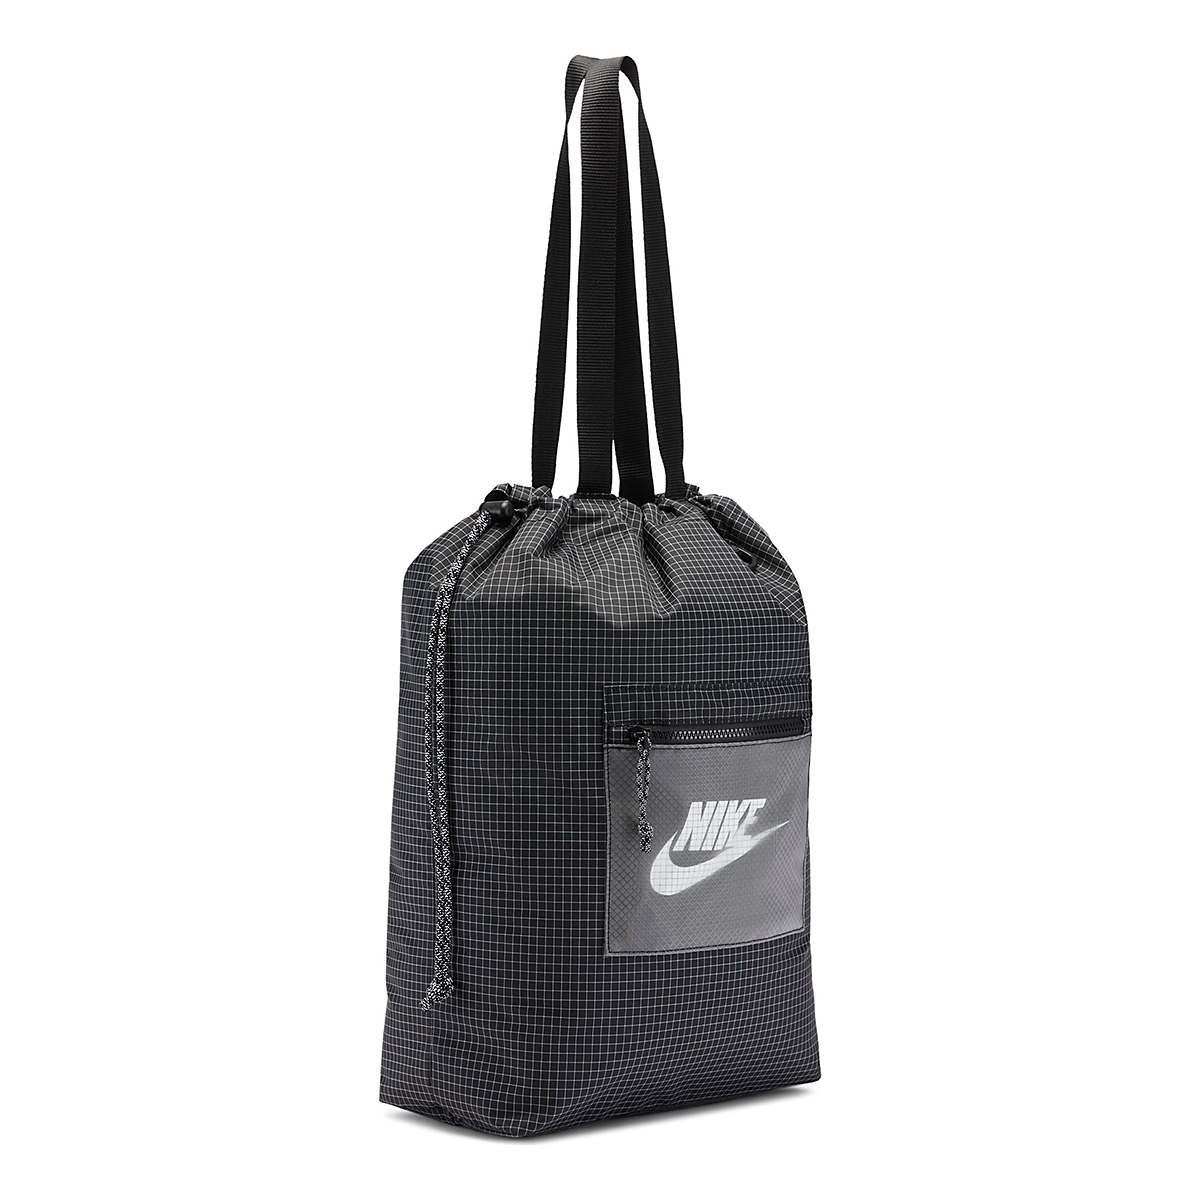 Nike Heritage Tote Bag - Color: Black/White, Black/White, large, image 3